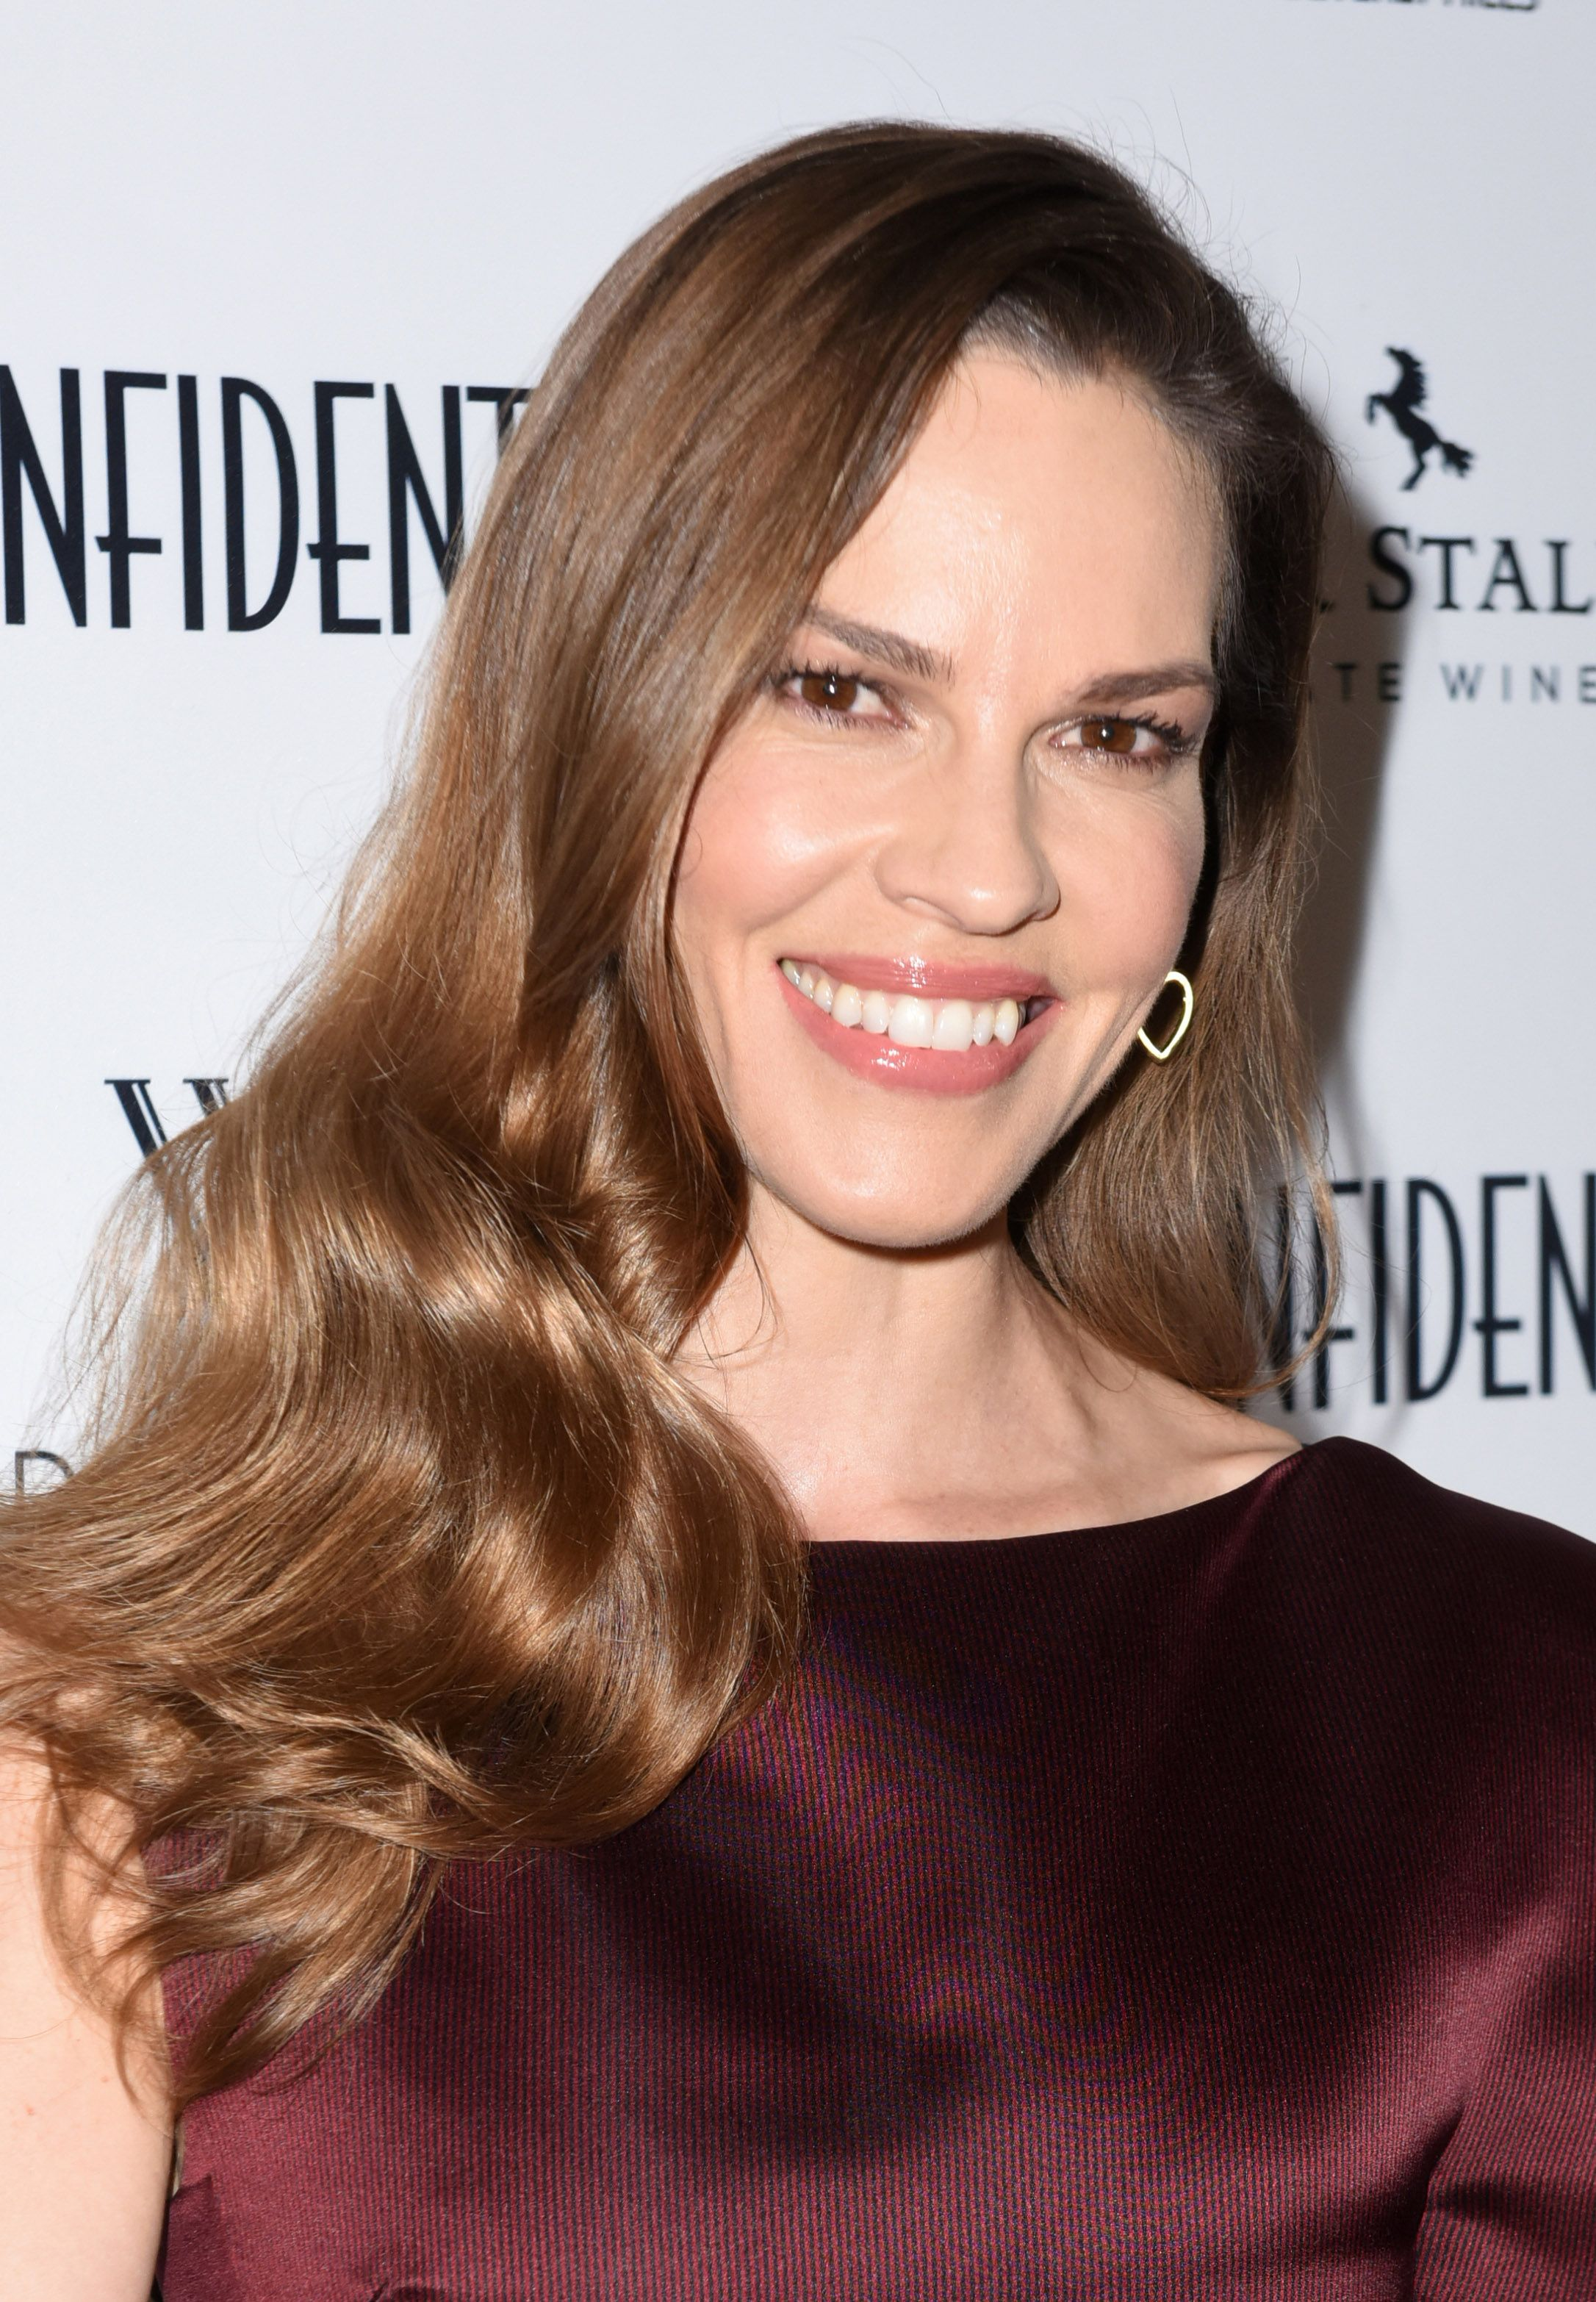 Hilary Swank at Waldorf Astoria Beverly Hills on April 12, 2018 in Beverly Hills, California.   Photo: Getty Images